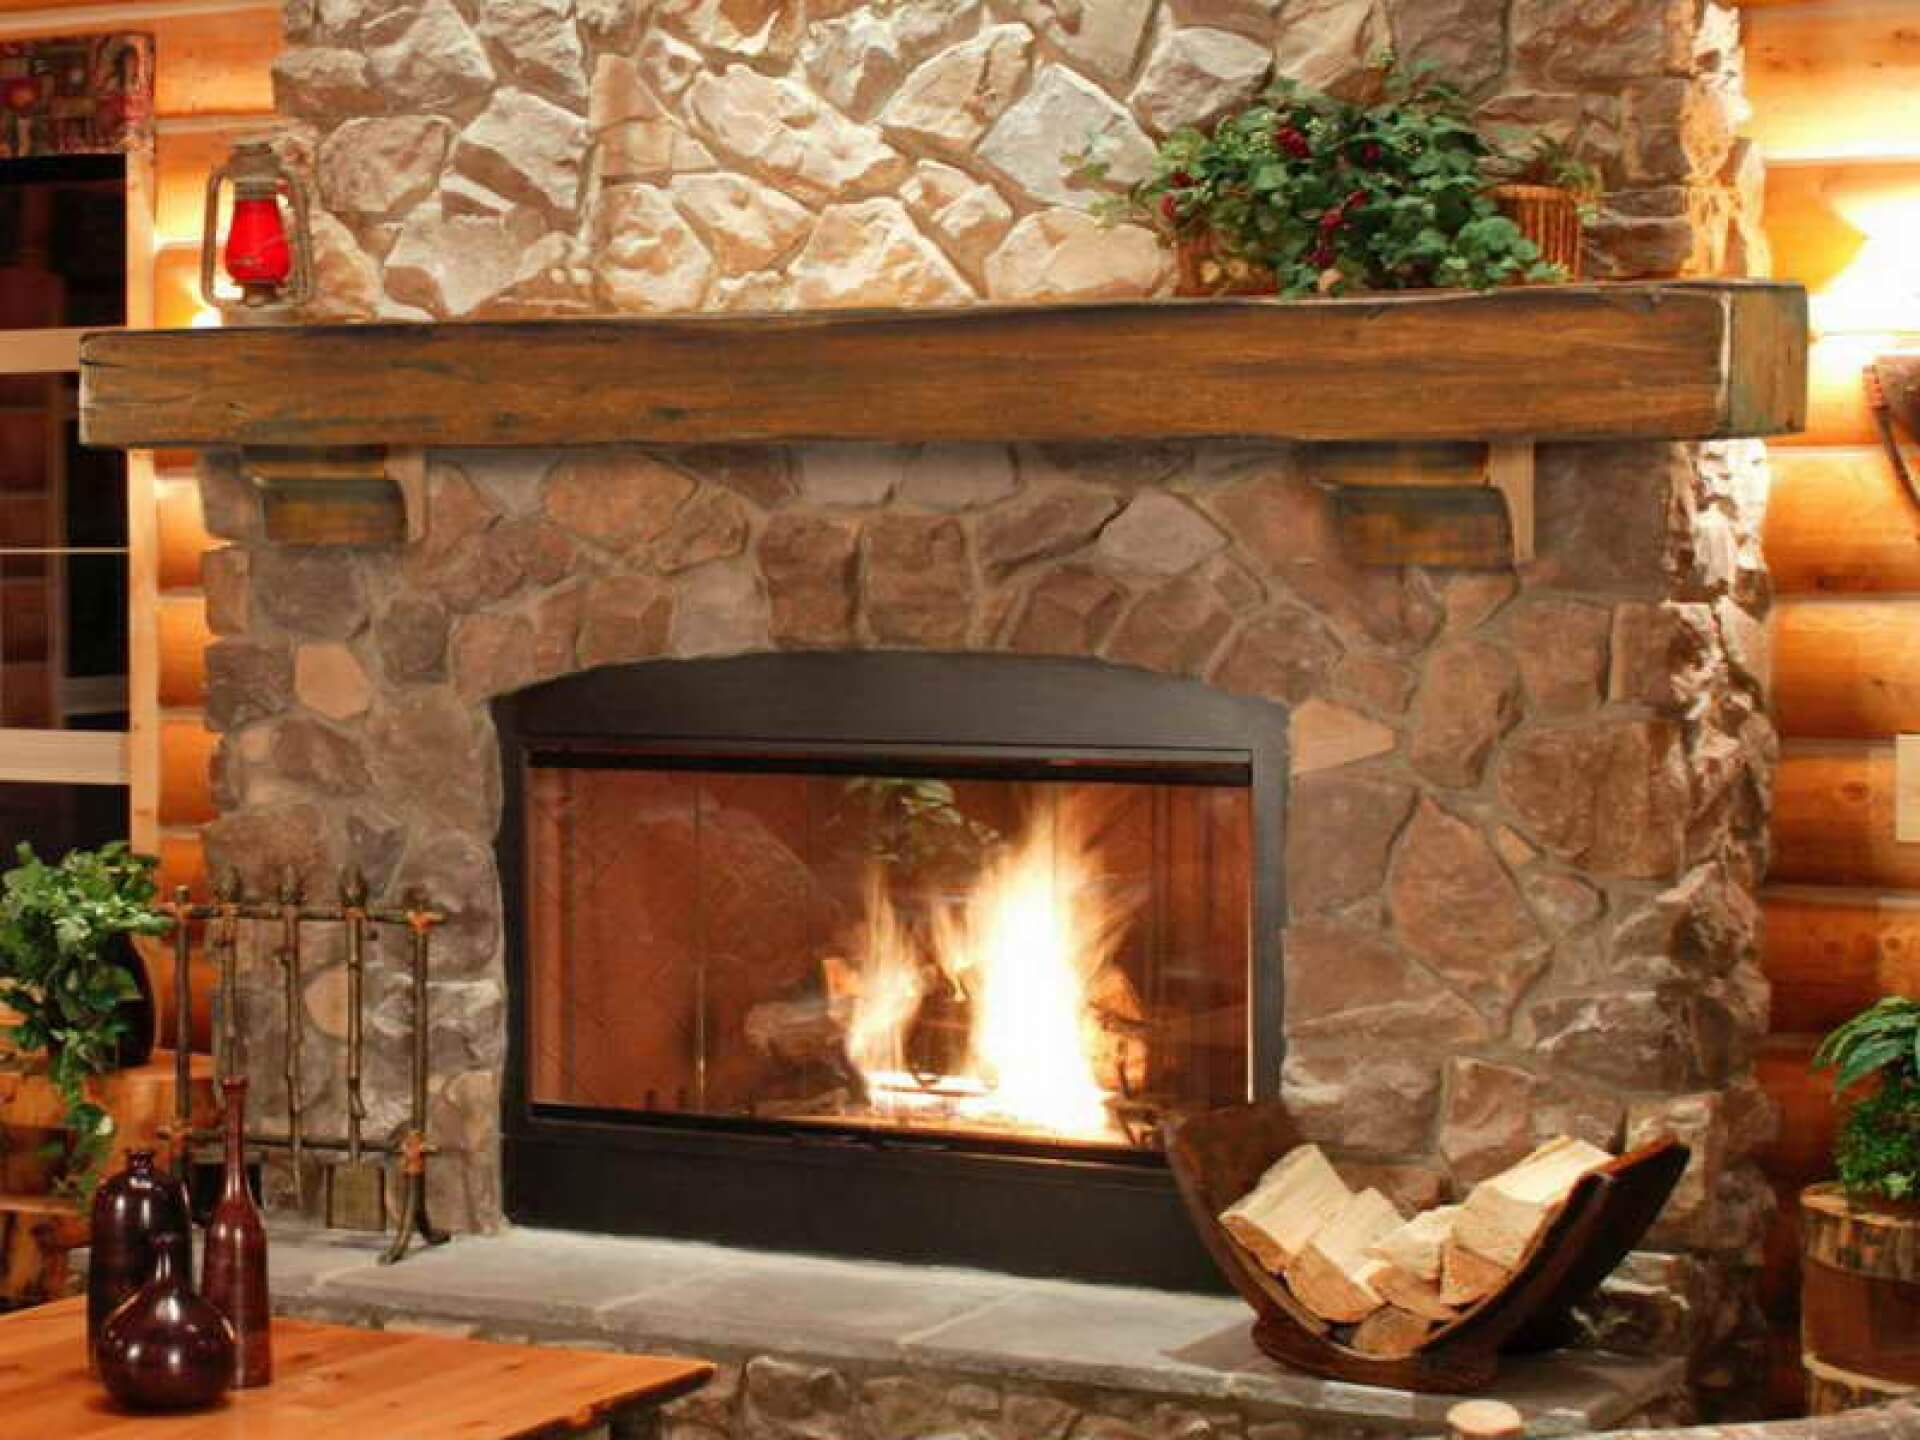 Stone slab fireplaces are still a thing of beauty